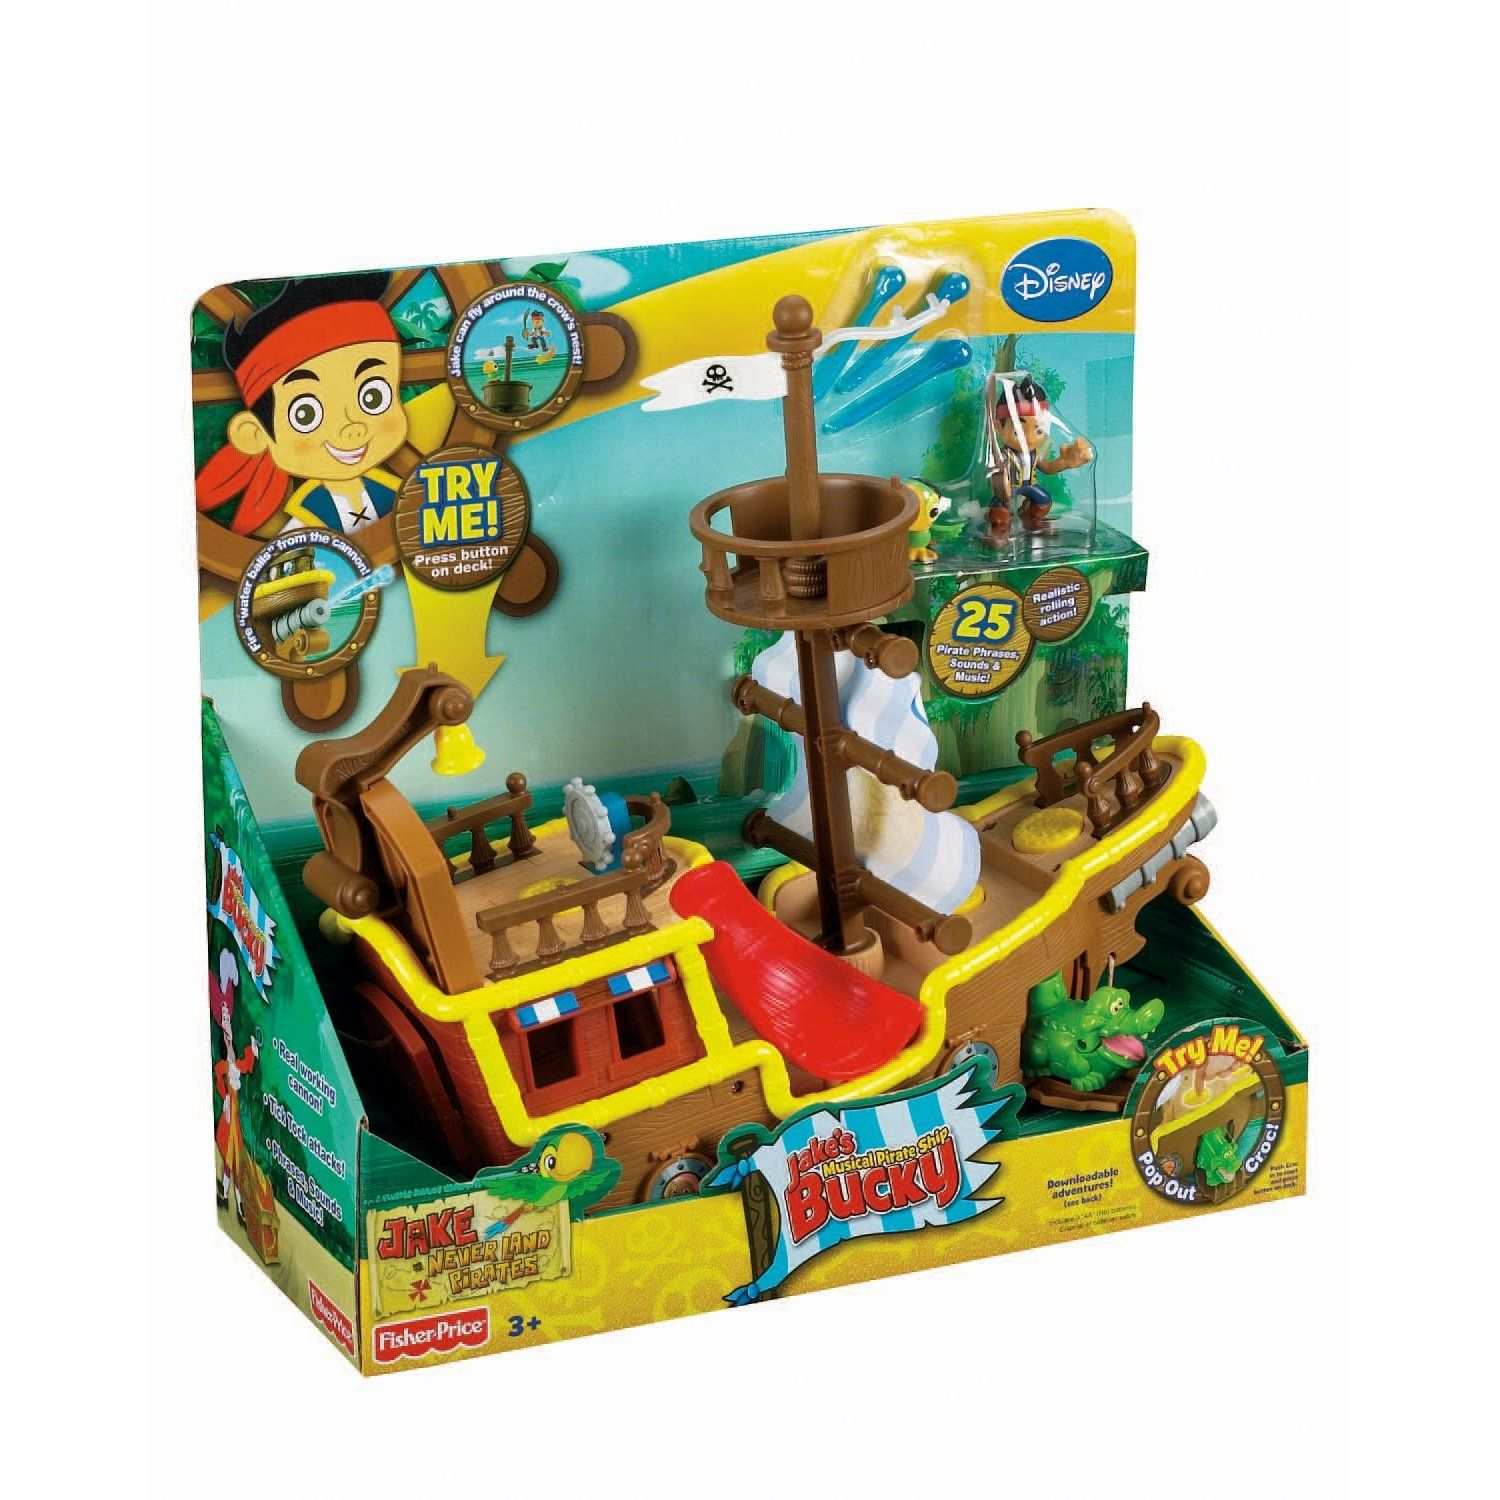 Top 10 Toys For 3 Year Old Boys My Favorite Pirate Ship